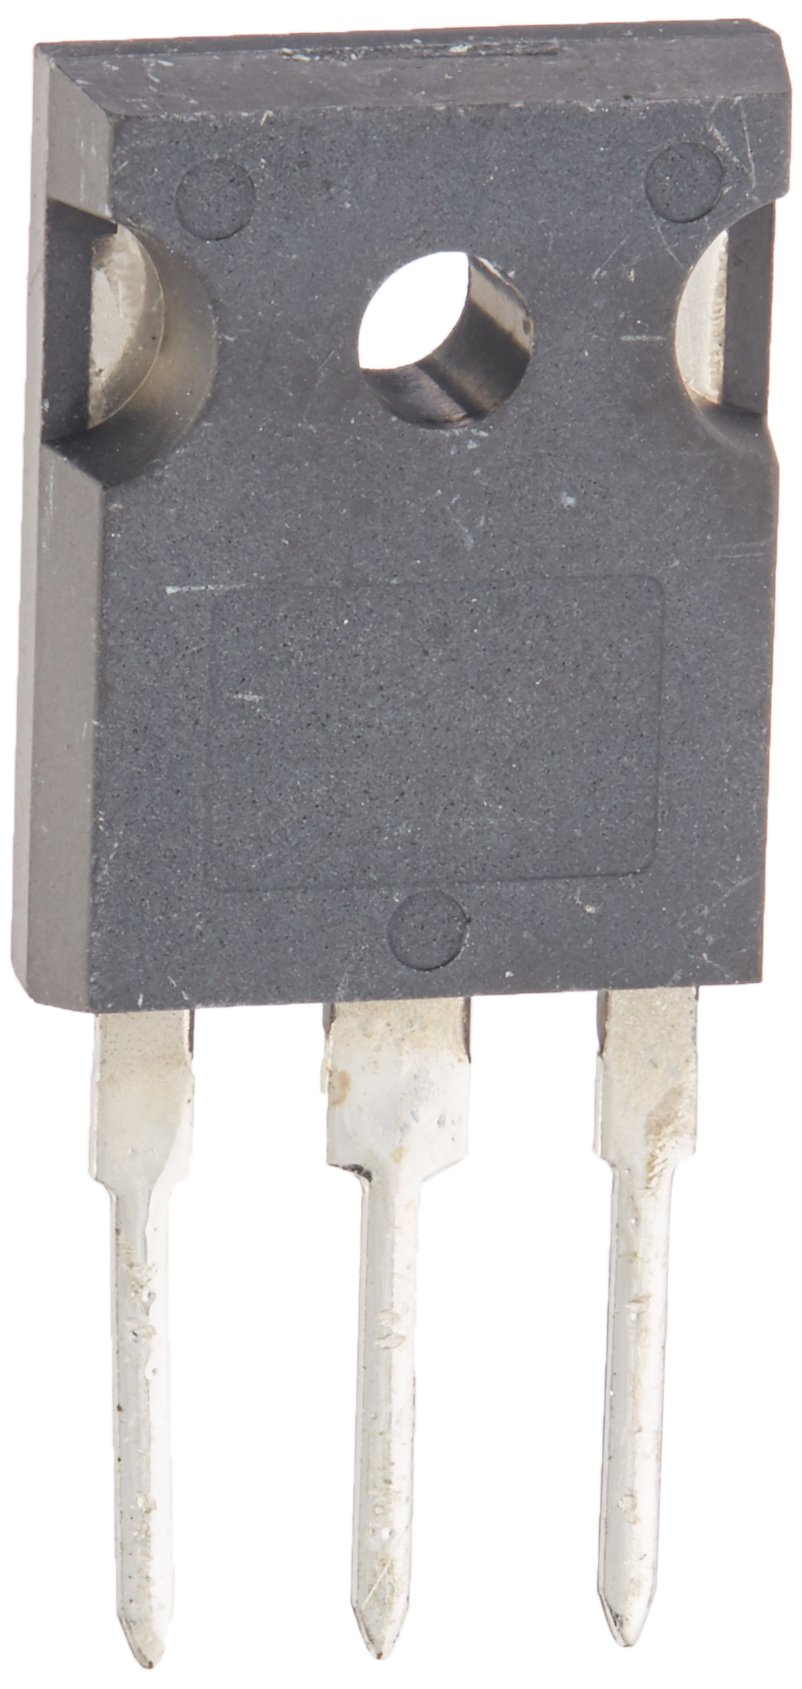 NTE Electronics NTE2920 N-Channel Power MOSFET Transistor, Enhancement Mode, High Speed Switch, TO3P Type Package, 60V, 70 Amp